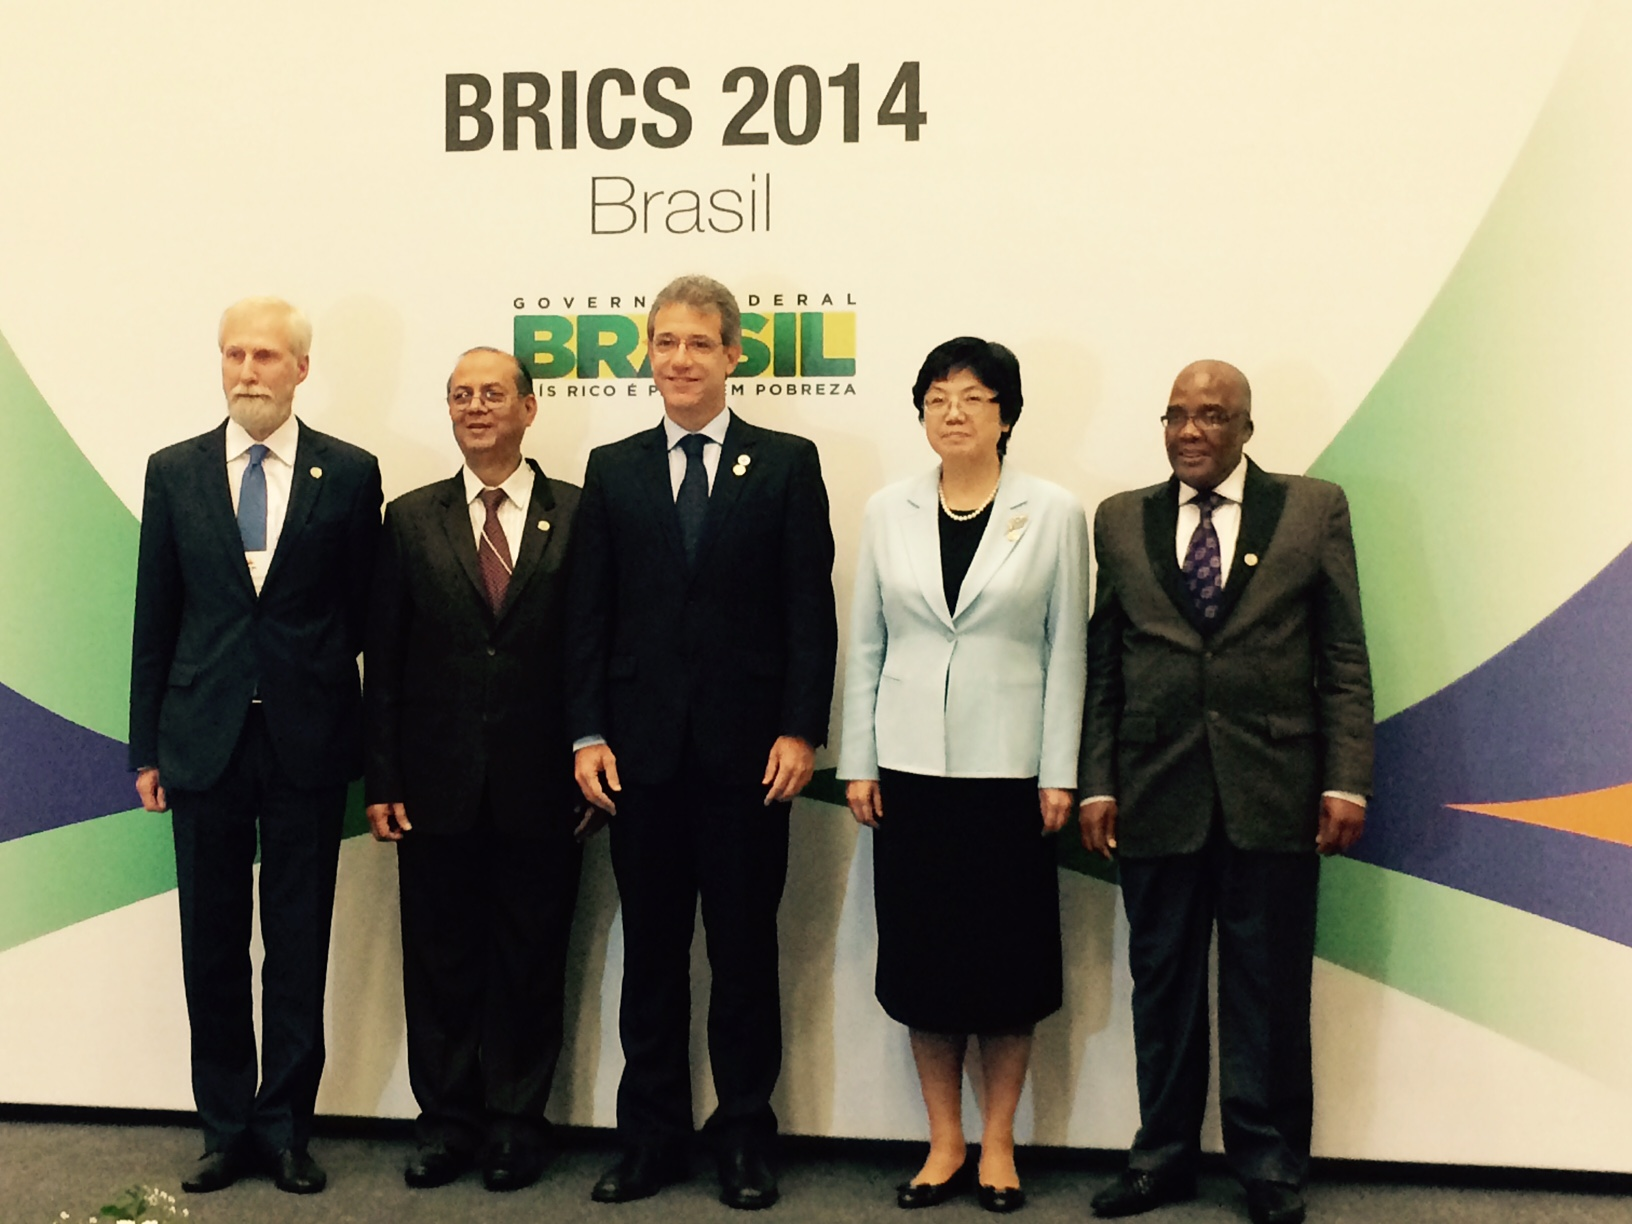 BRICS Health Ministers Make Historic Commitment  and Agree to Cooperation Plan on TB at BRICS Ministers of Health Meeting in Brazil